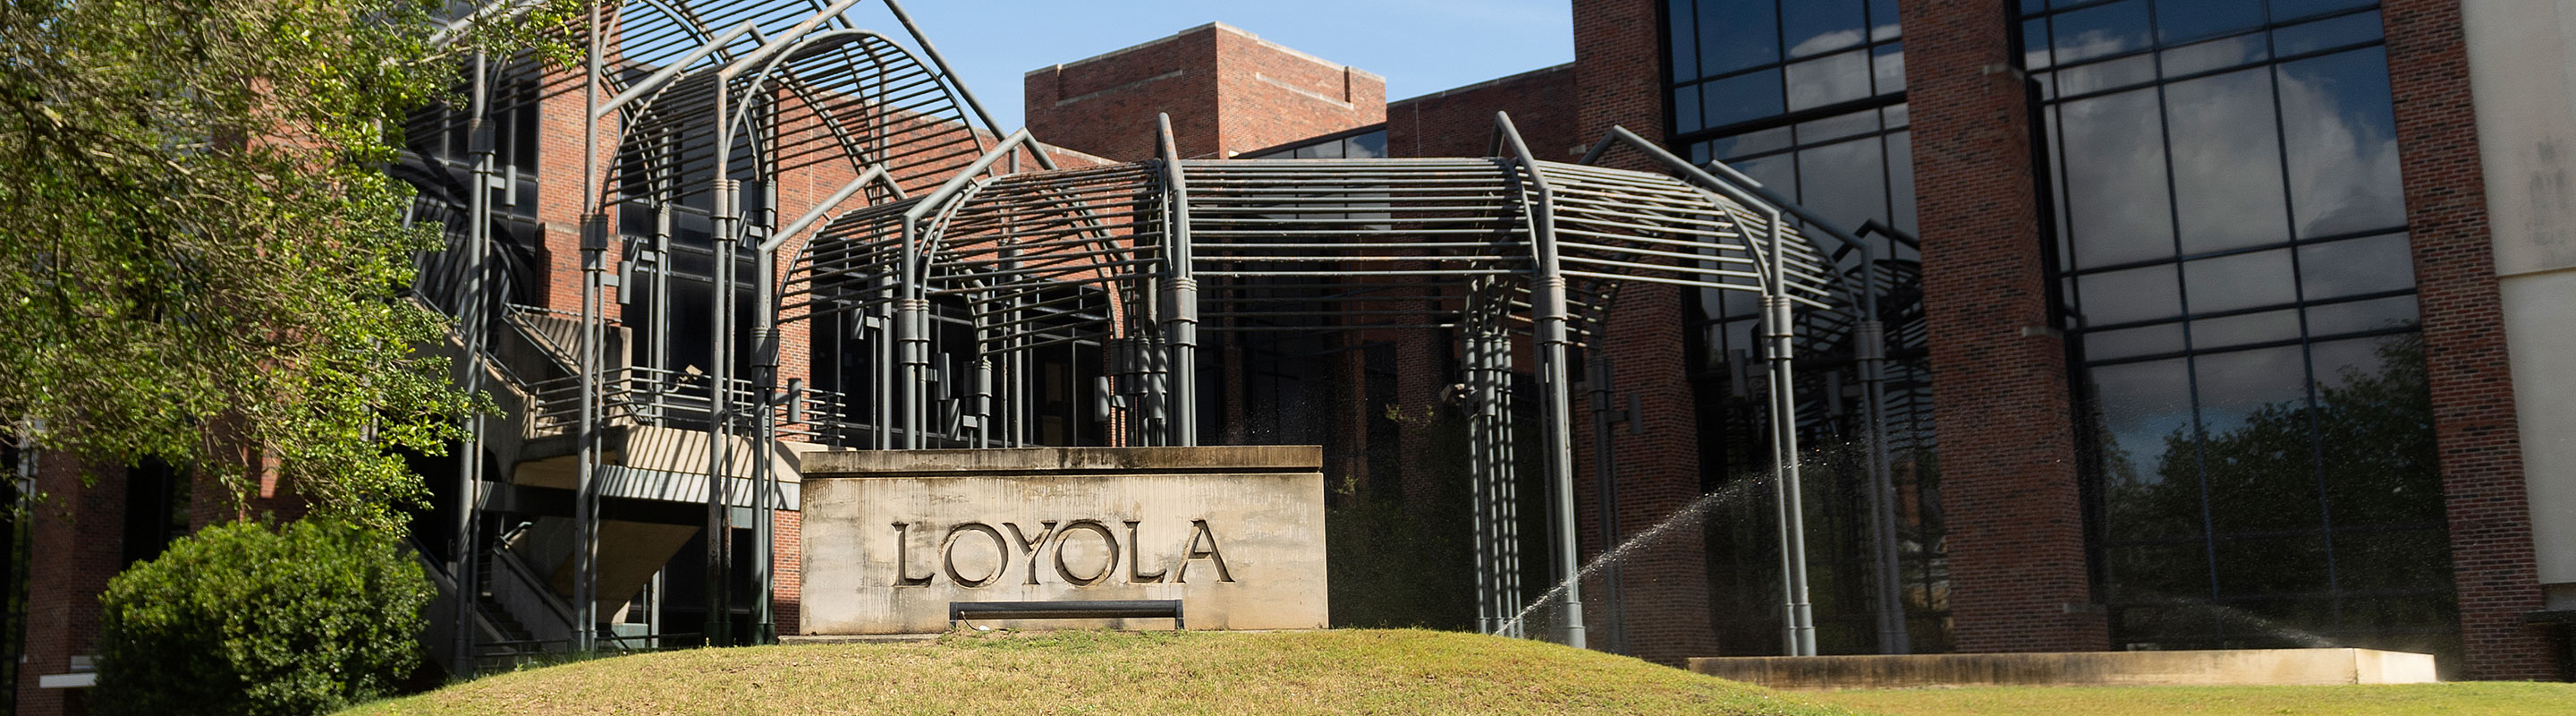 Loyola University New Orleans front entrance